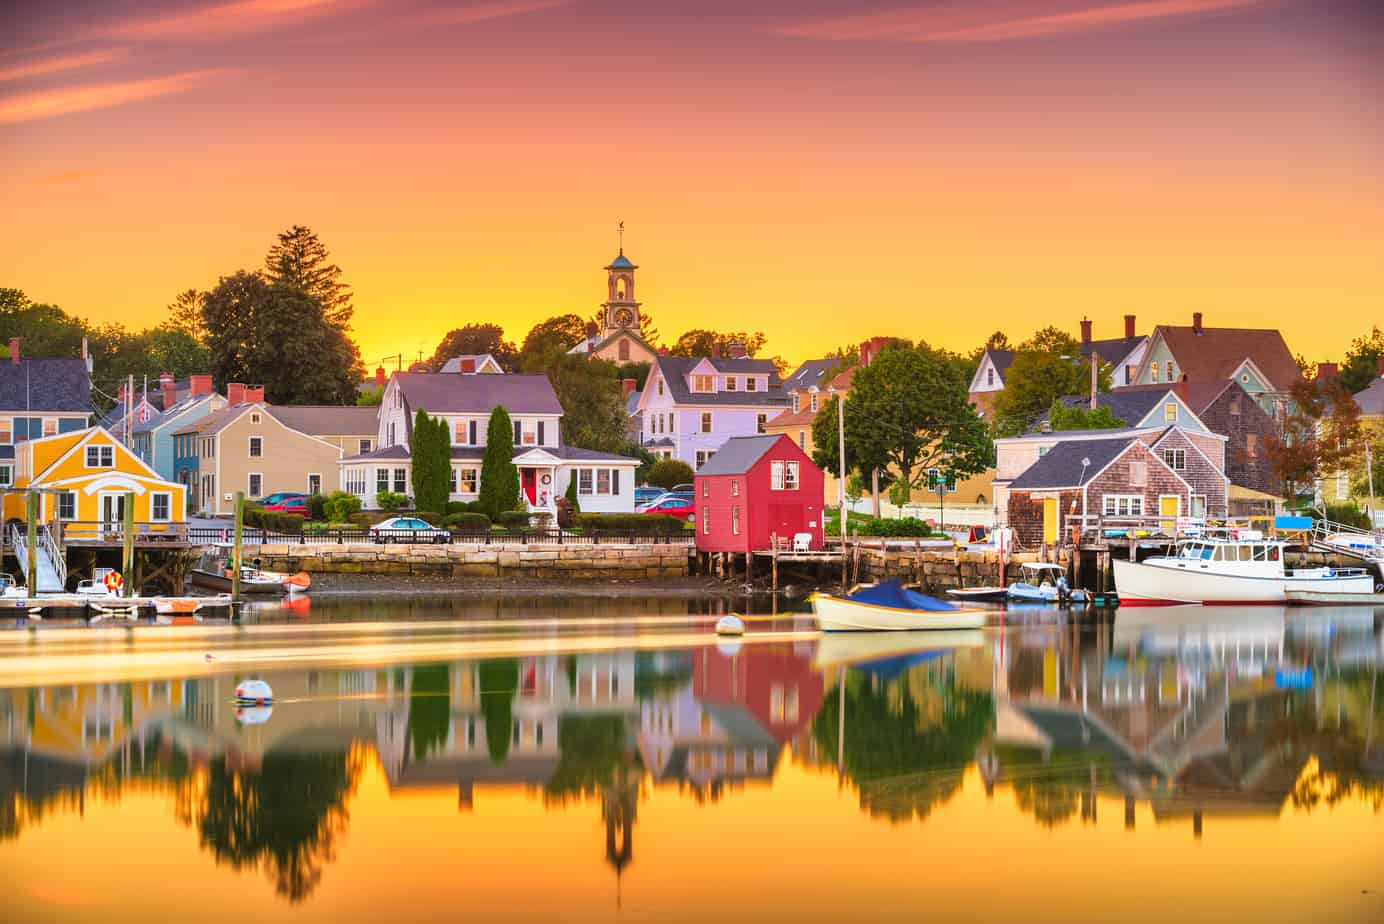 portsmouth nh at golden hour sunset - things to do in portsmouth nh